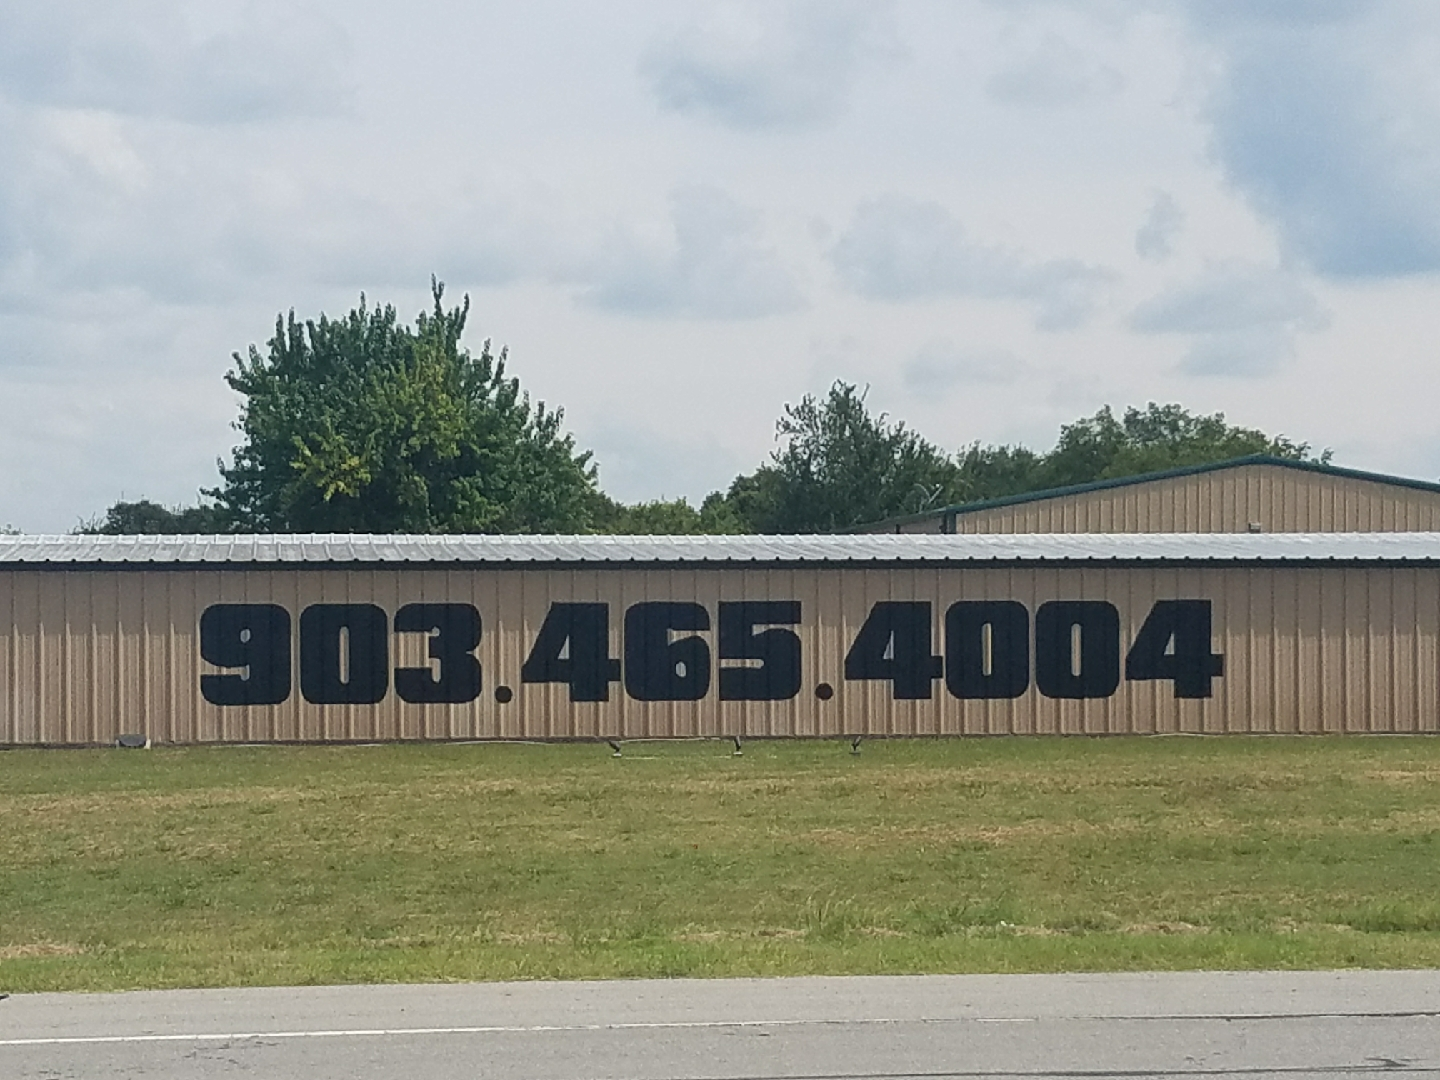 Phone number painted on the building